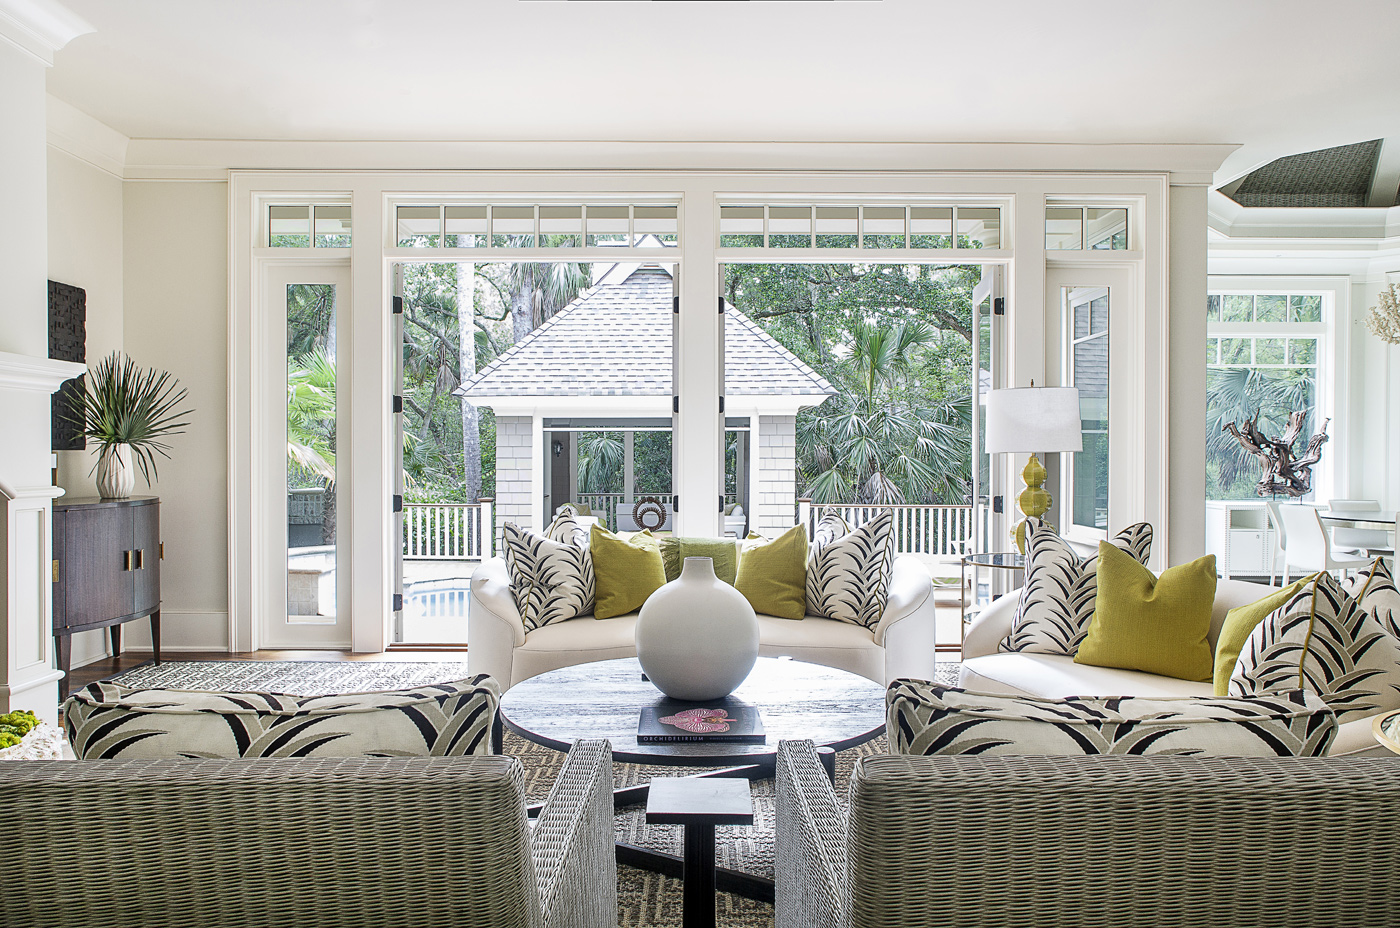 White living room overlooking tropical landscape with pool; Carleton V fabrics; citrus green accents | Savage Interior Design